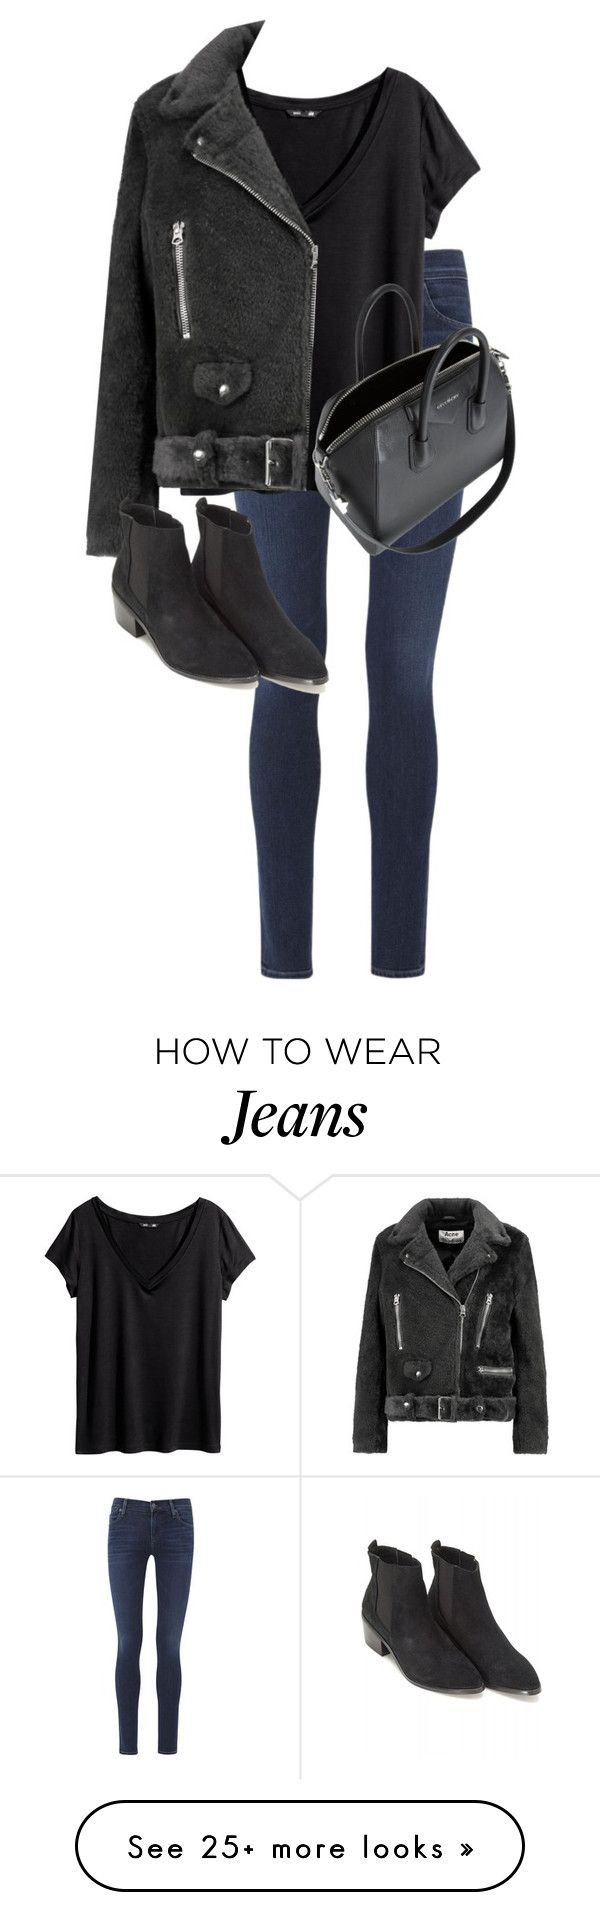 """Untitled #10197"" by alexsrogers on Polyvore featuring Citizens of Humanity, H&M, Acne Studios, Sol Sana and Givenchy"